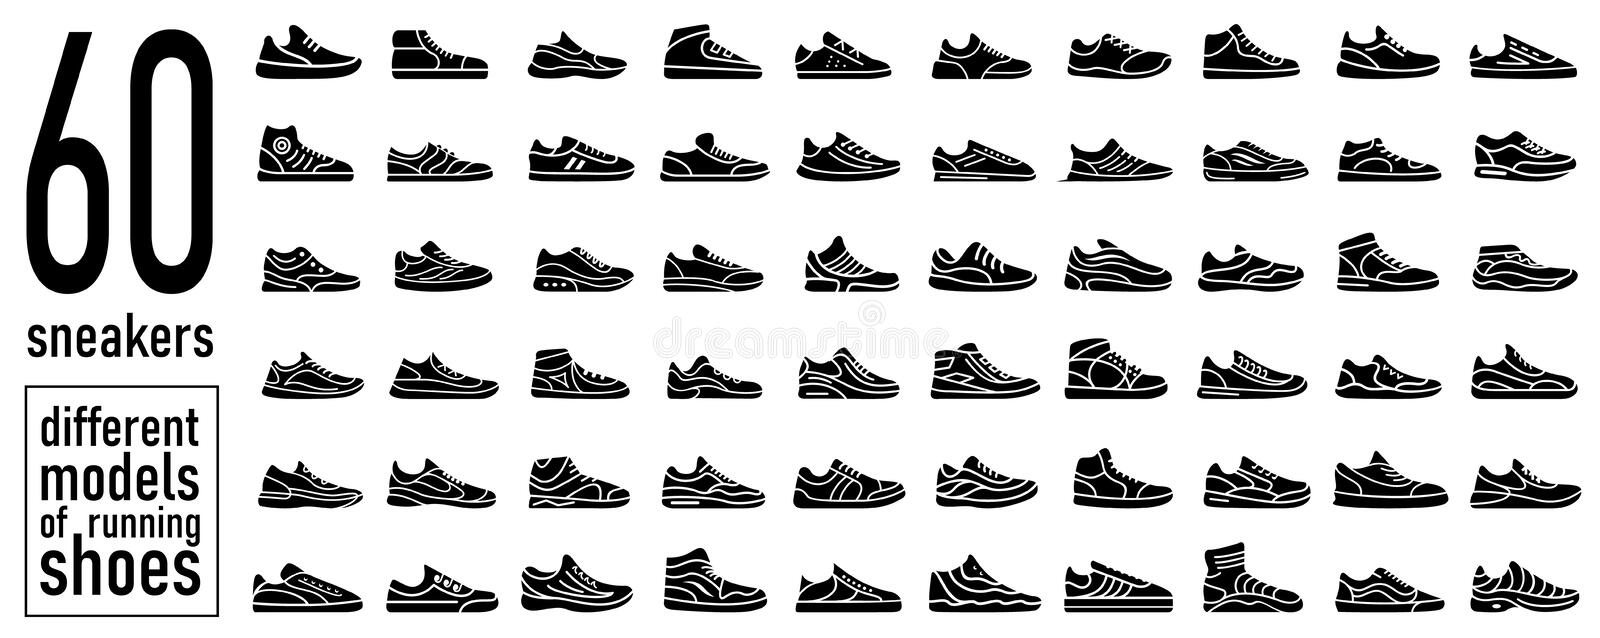 60 sneaker running shoes icons set. Simple style stock photo